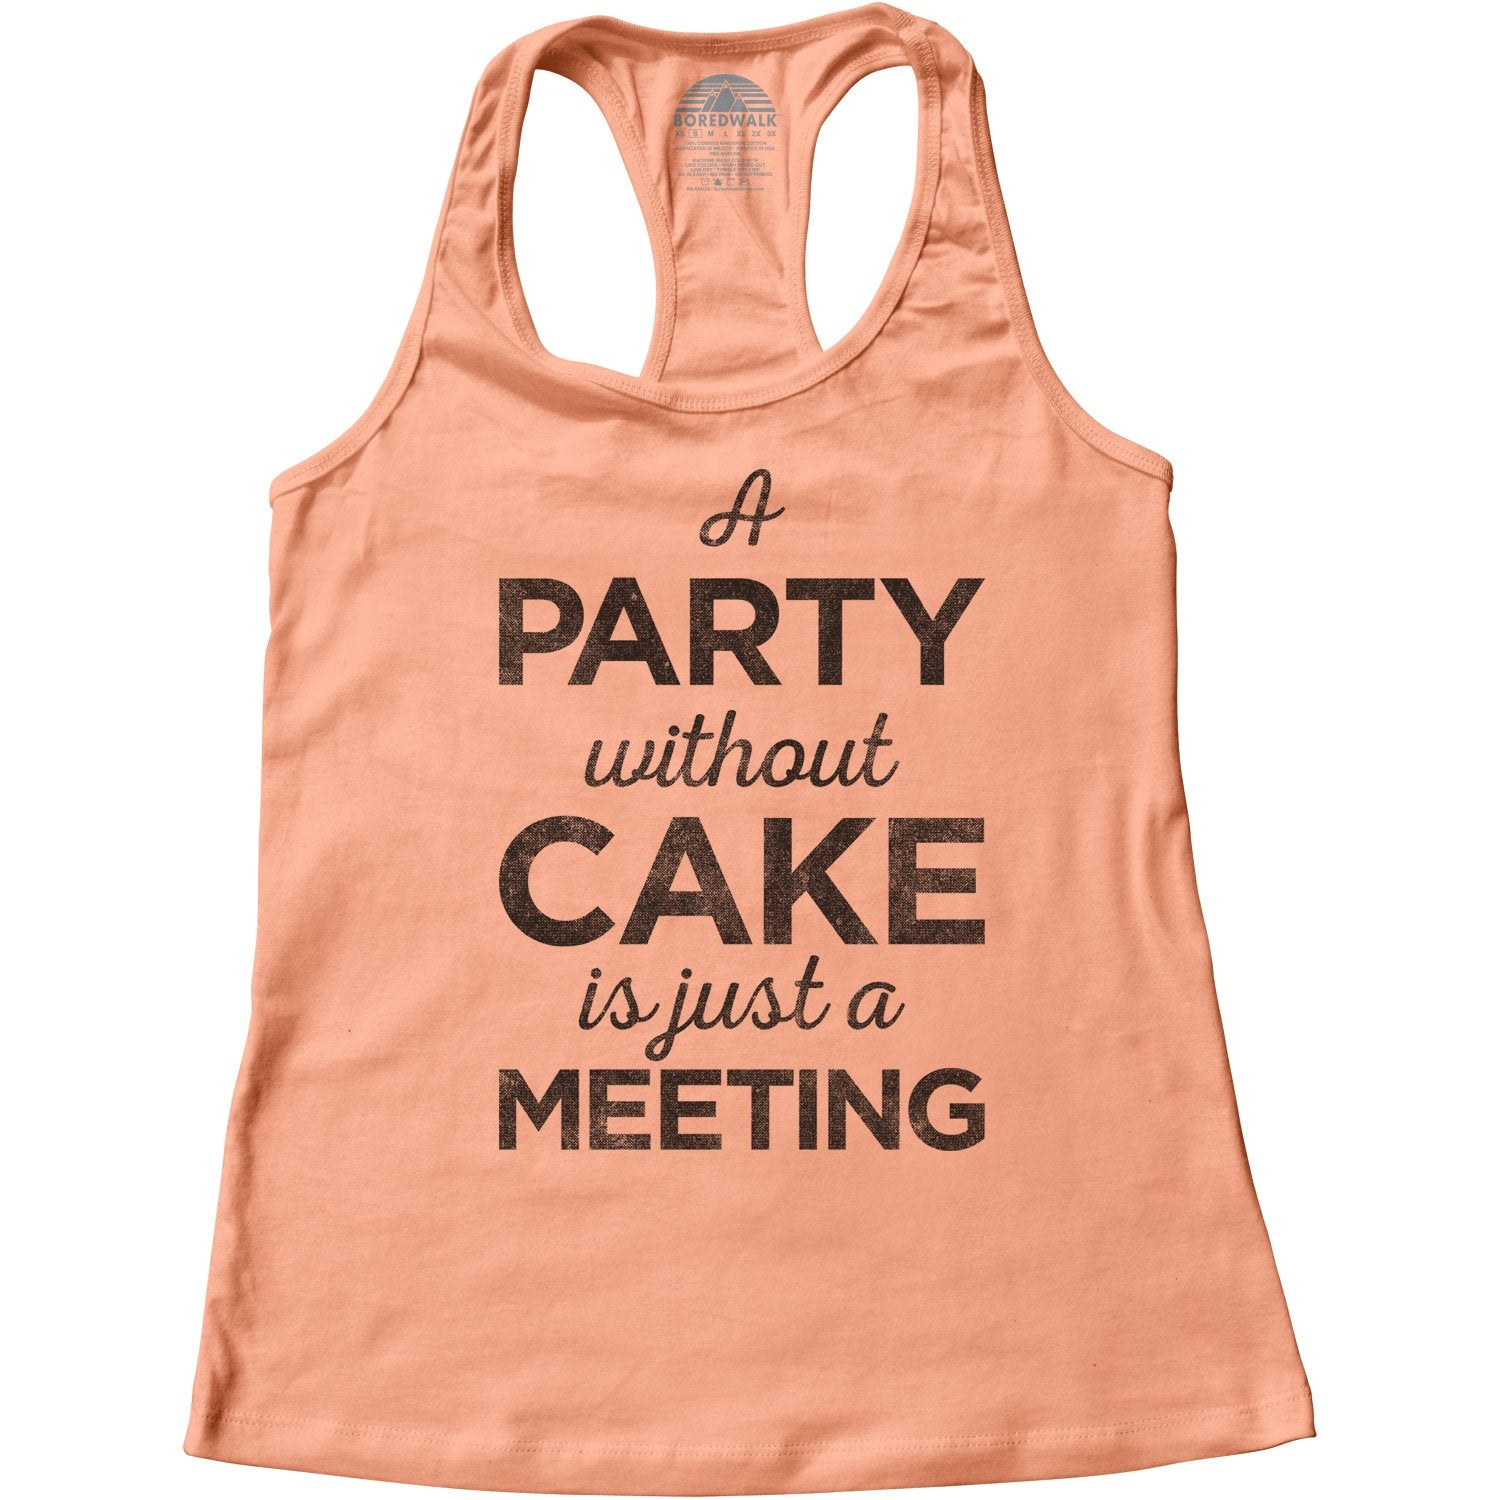 Women's A Party Without Cake is Just a Meeting Racerback Tank Top